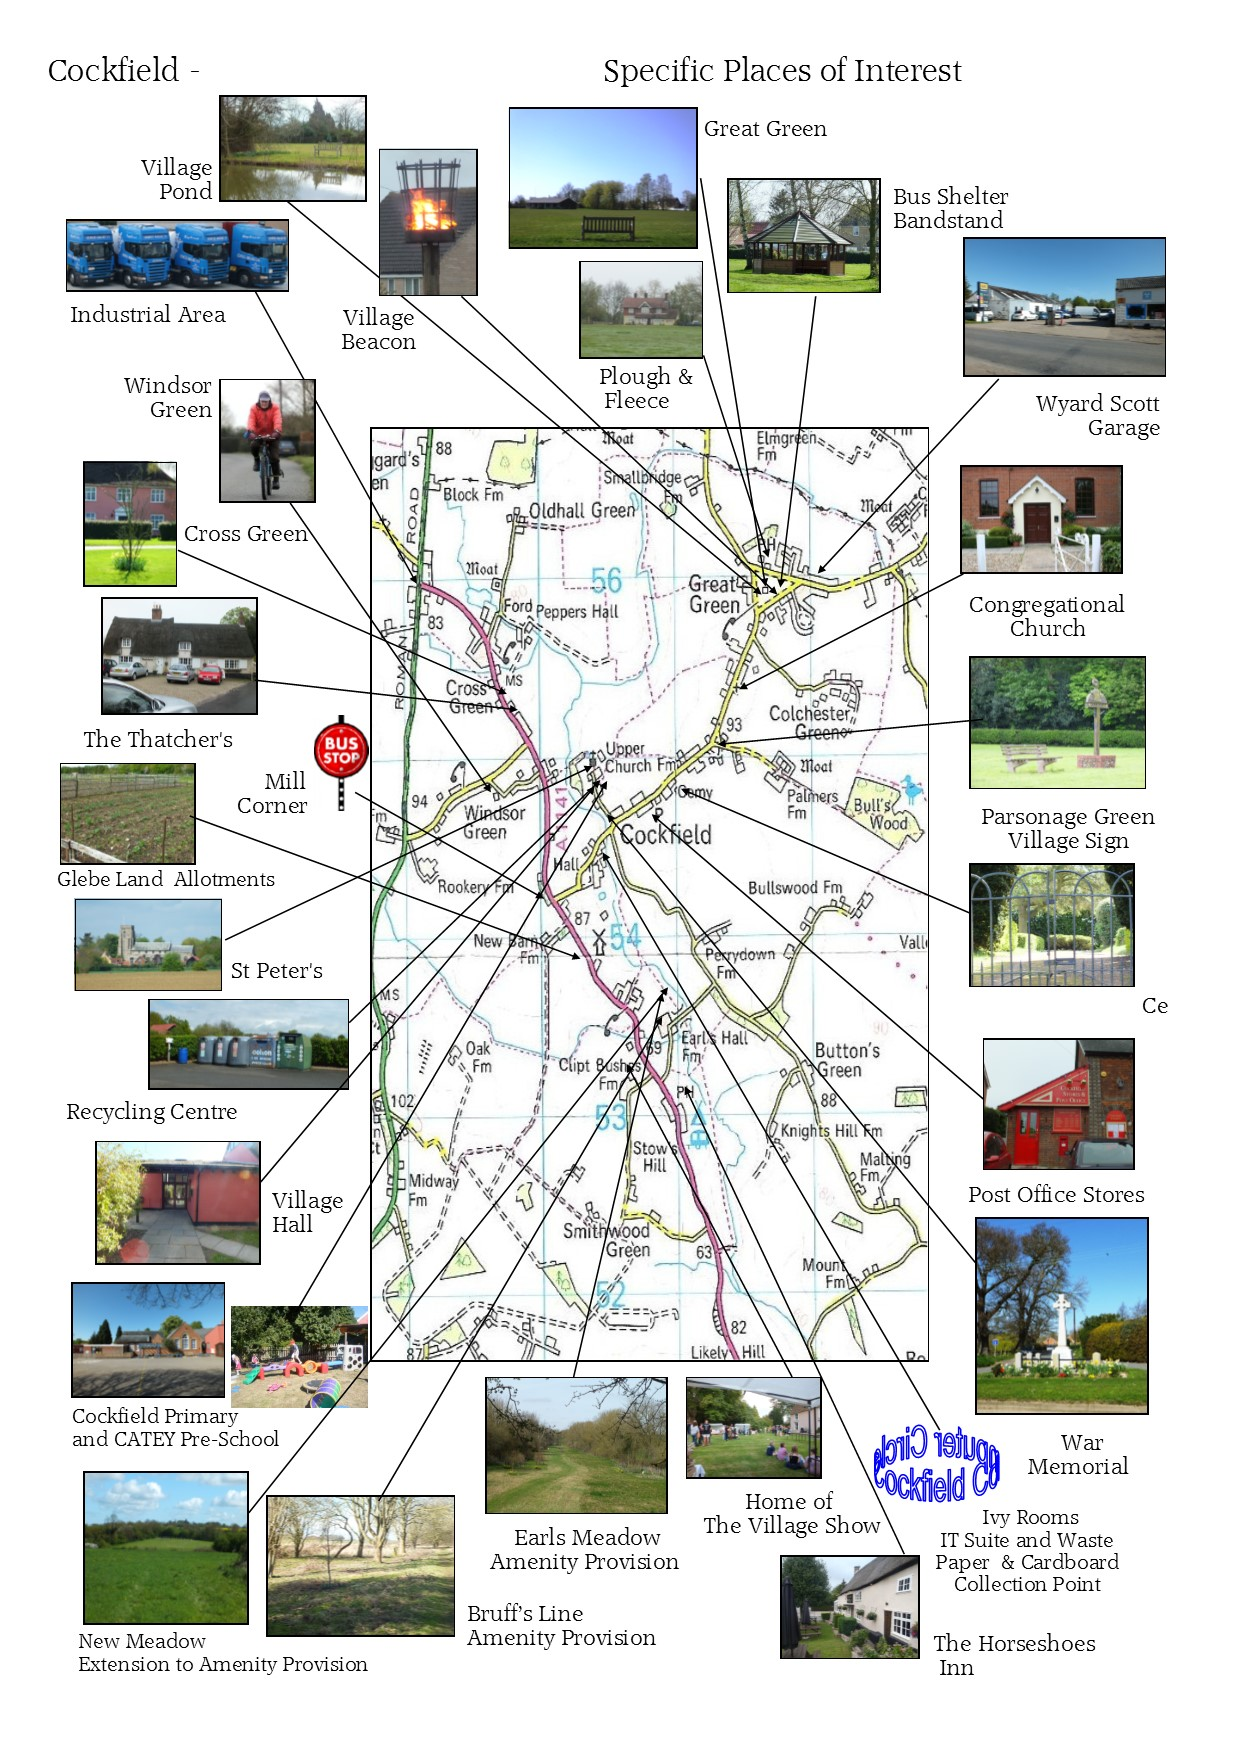 interest places cockfield map suffolk village south